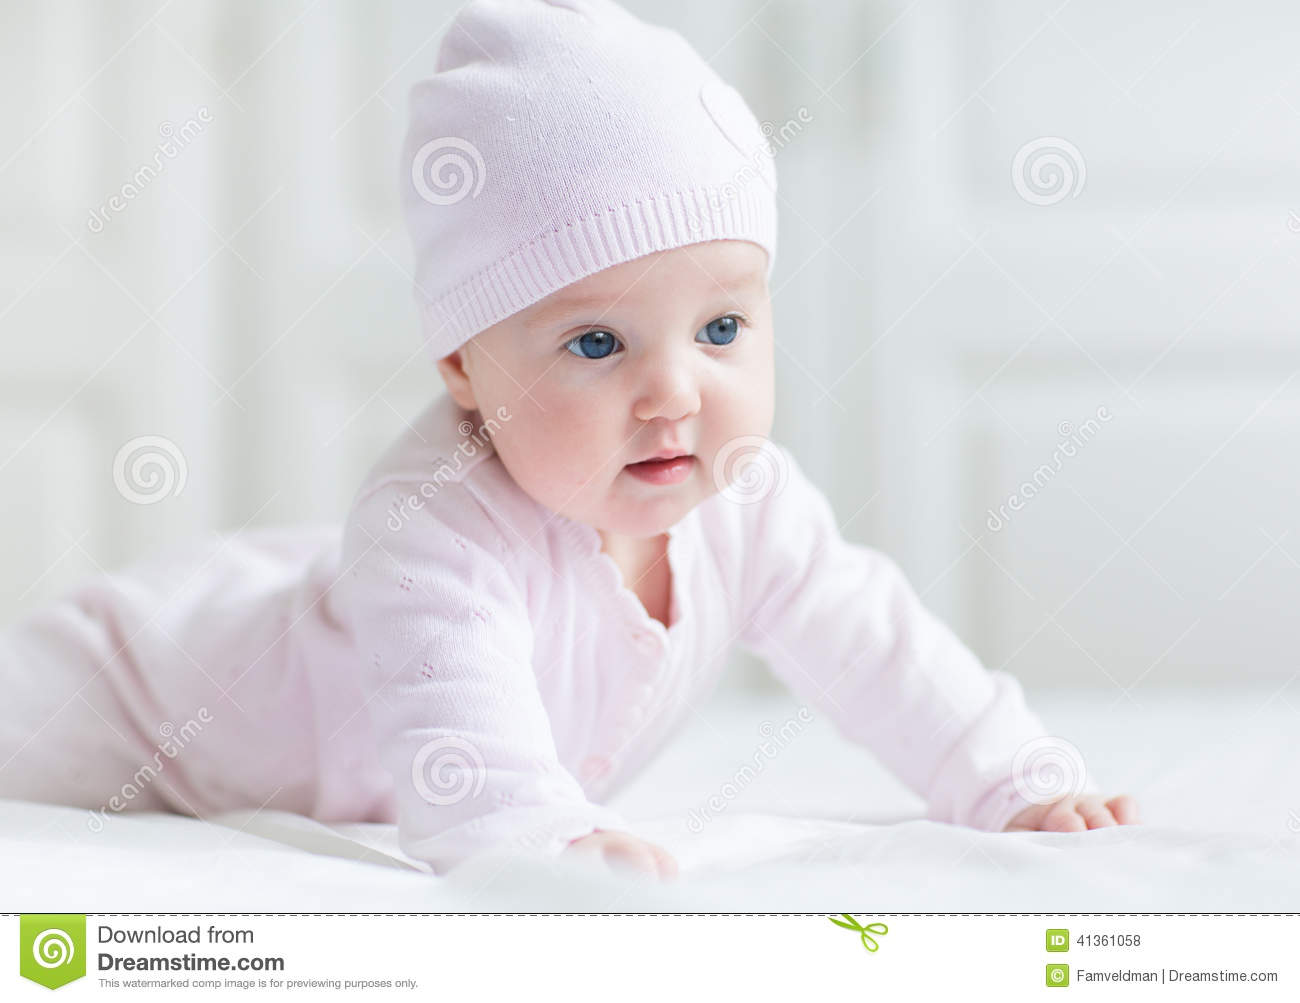 Baby Girl With Big Blue Eyes On White Blanket Stock Photo